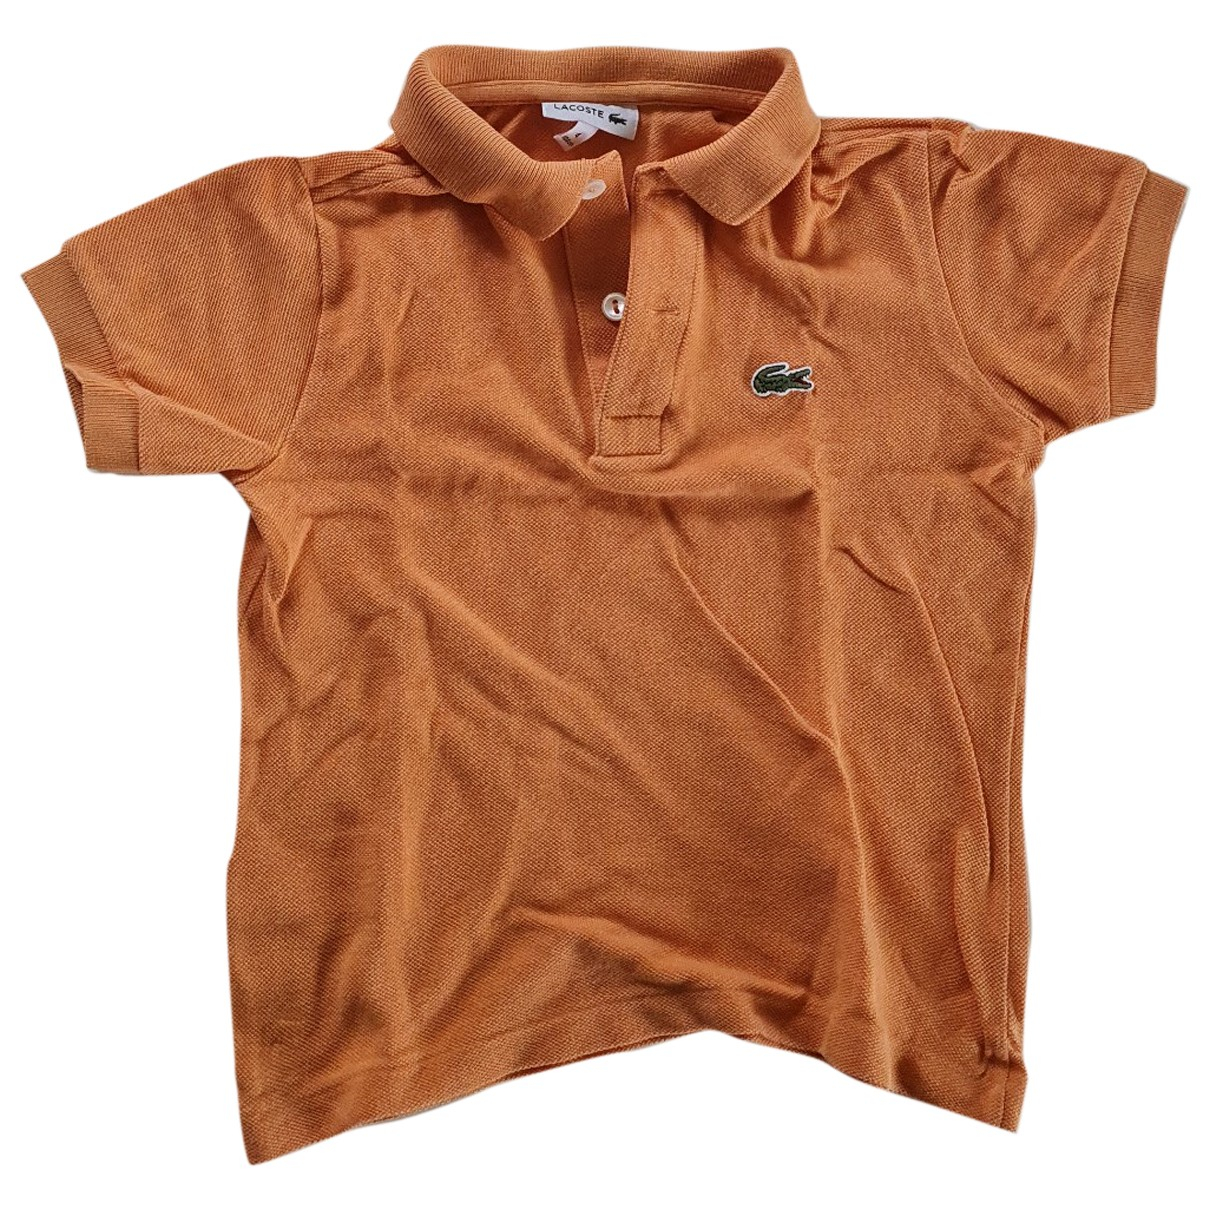 Lacoste N Orange Cotton  top for Kids 4 years - up to 102cm FR